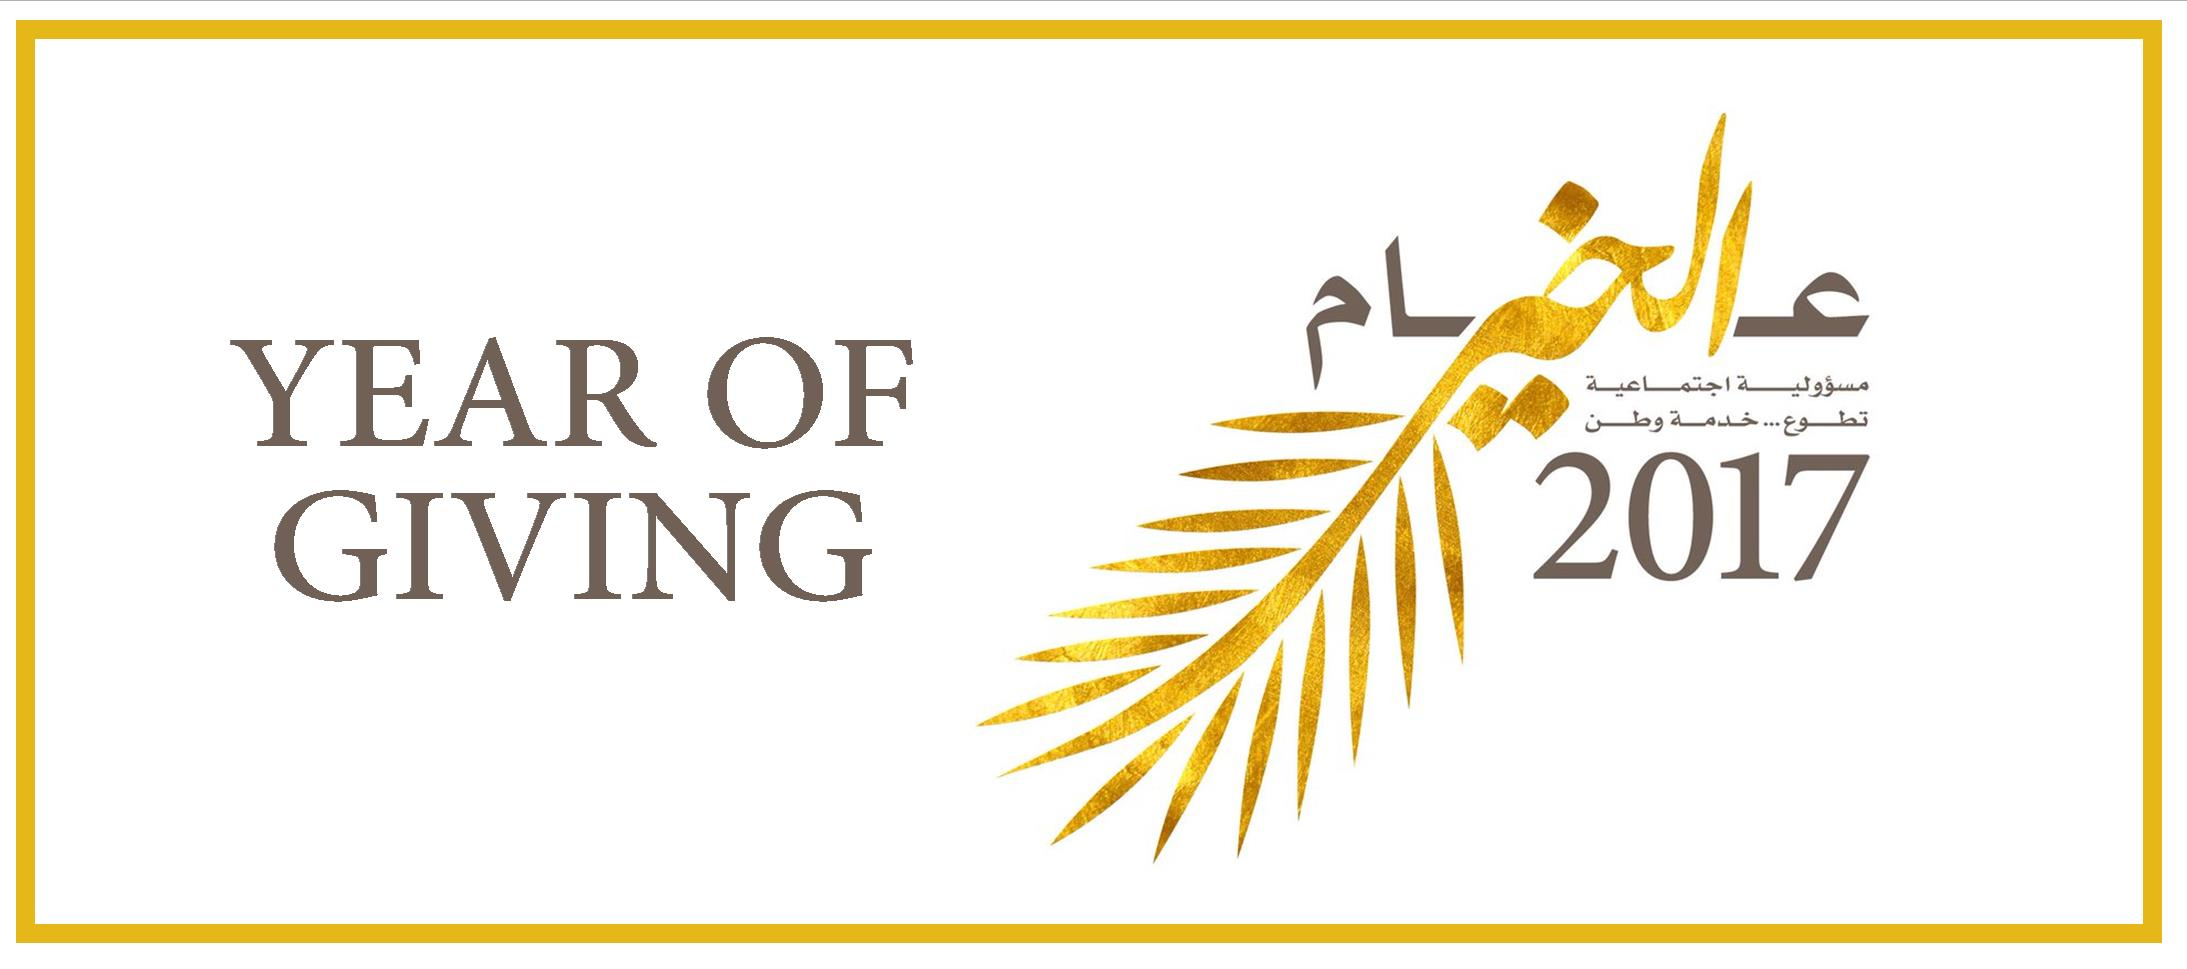 Year Of Giving,Iran Insurance,Social Responsibility,Volunteering,Serving the Nation,CRS,Corporate Social Responsibility